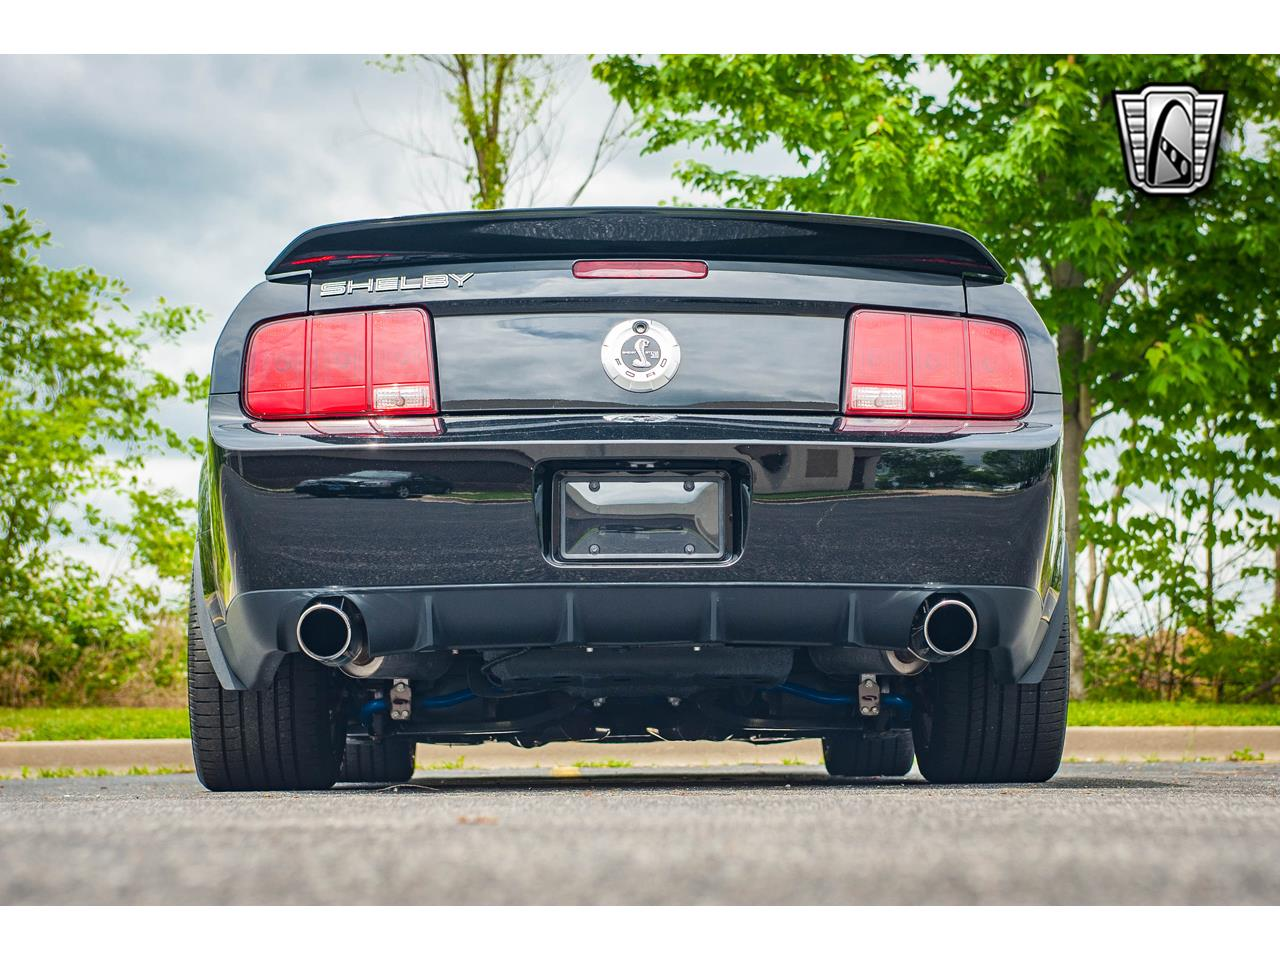 Large Picture of '07 Ford Mustang - $40,500.00 Offered by Gateway Classic Cars - St. Louis - QB98